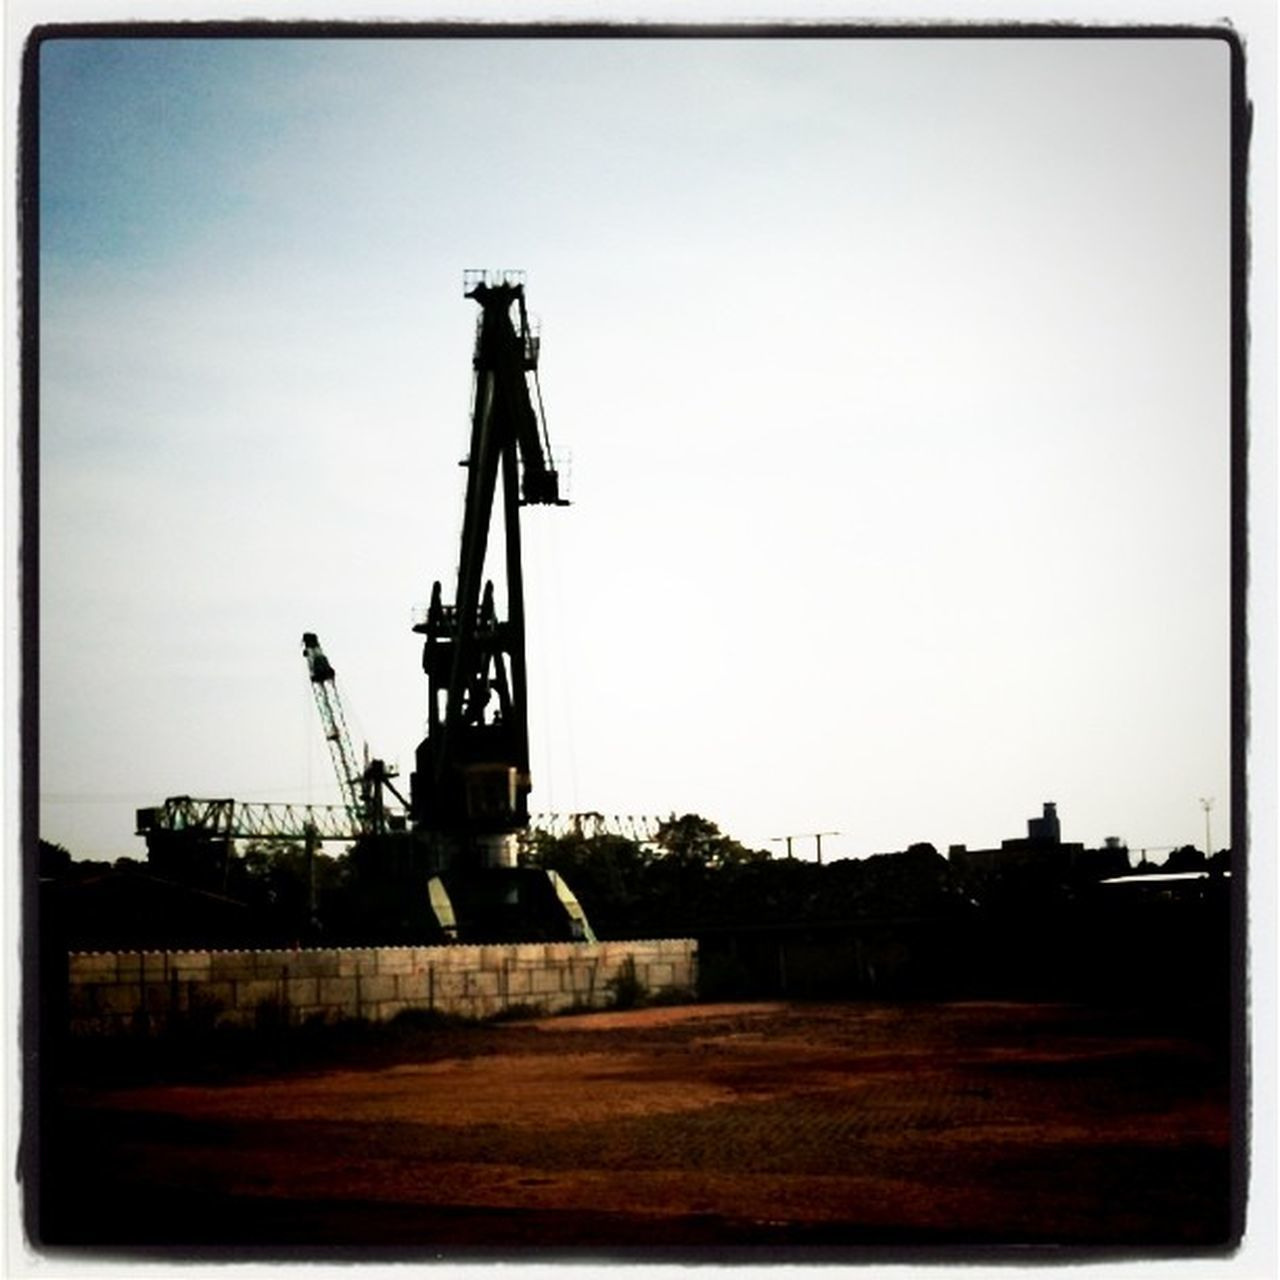 no people, day, industry, outdoors, clear sky, coal mine, sky, architecture, oil pump, oil well, drilling rig